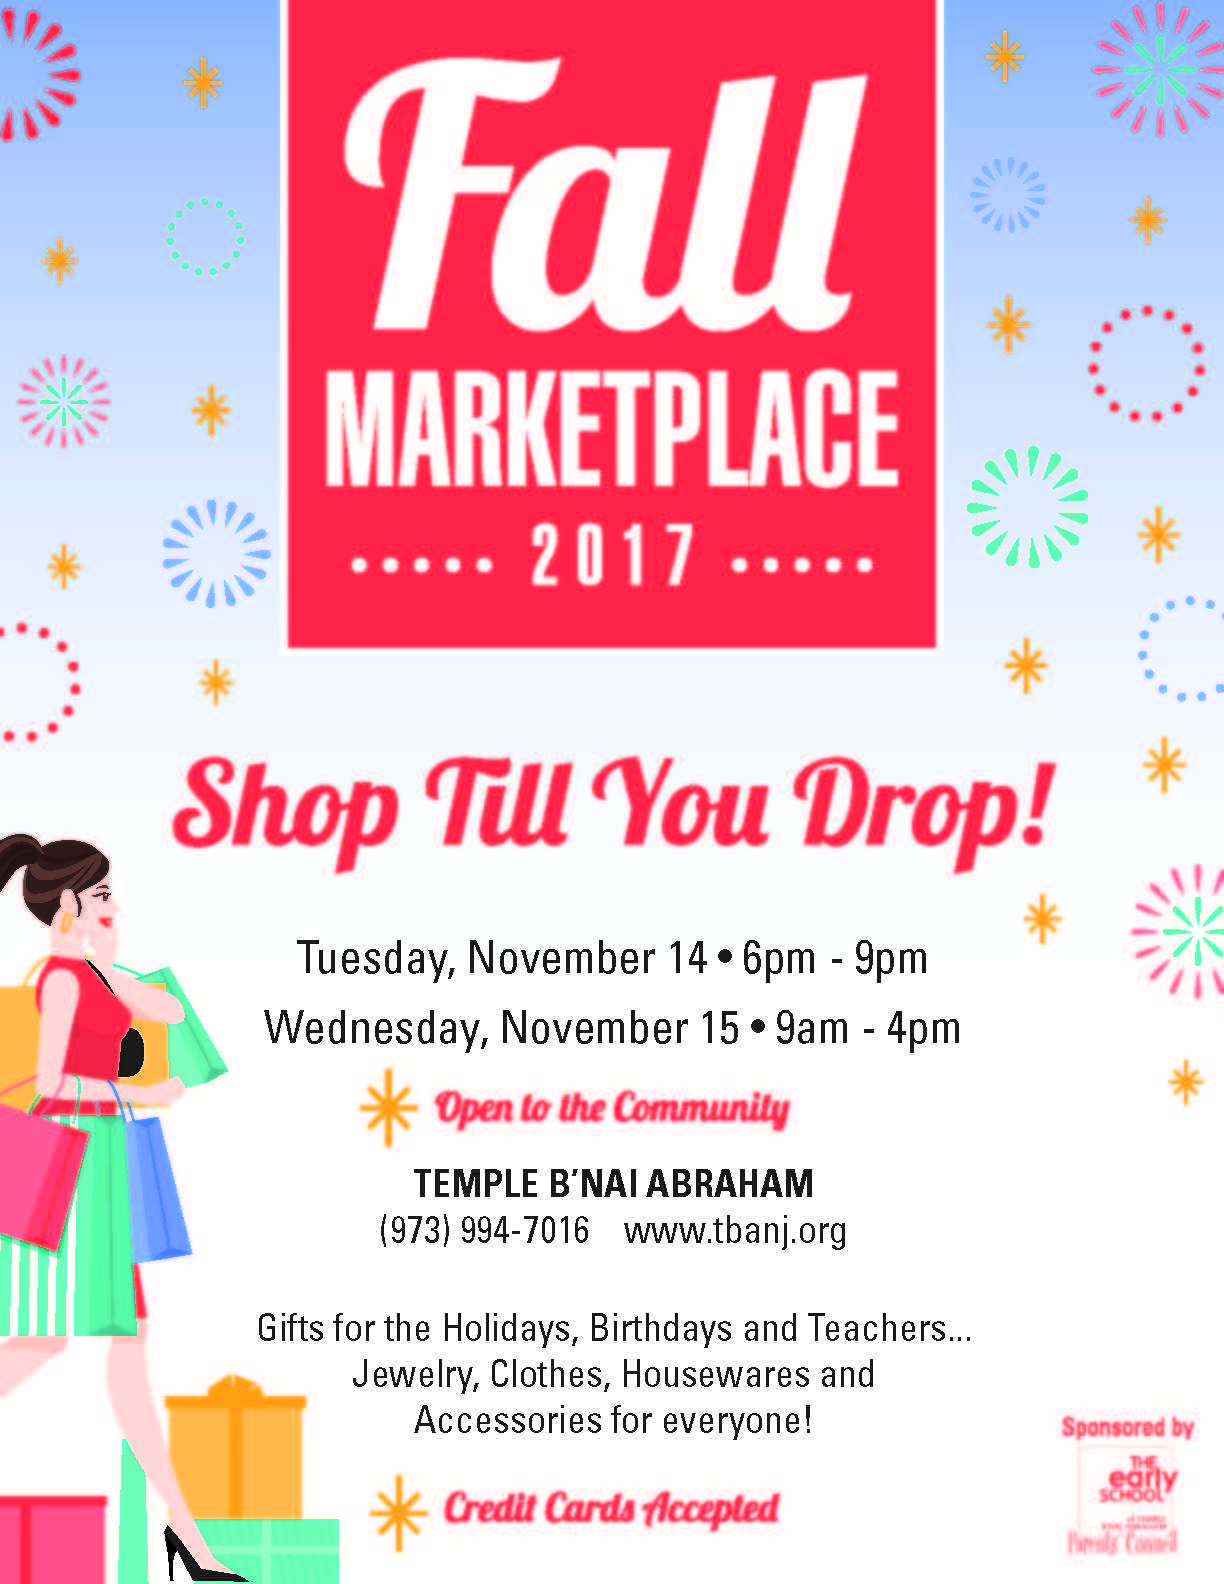 87f422c814ce83e1a2dd_Fall_Marketplace_Flyer_V2_2017.jpg